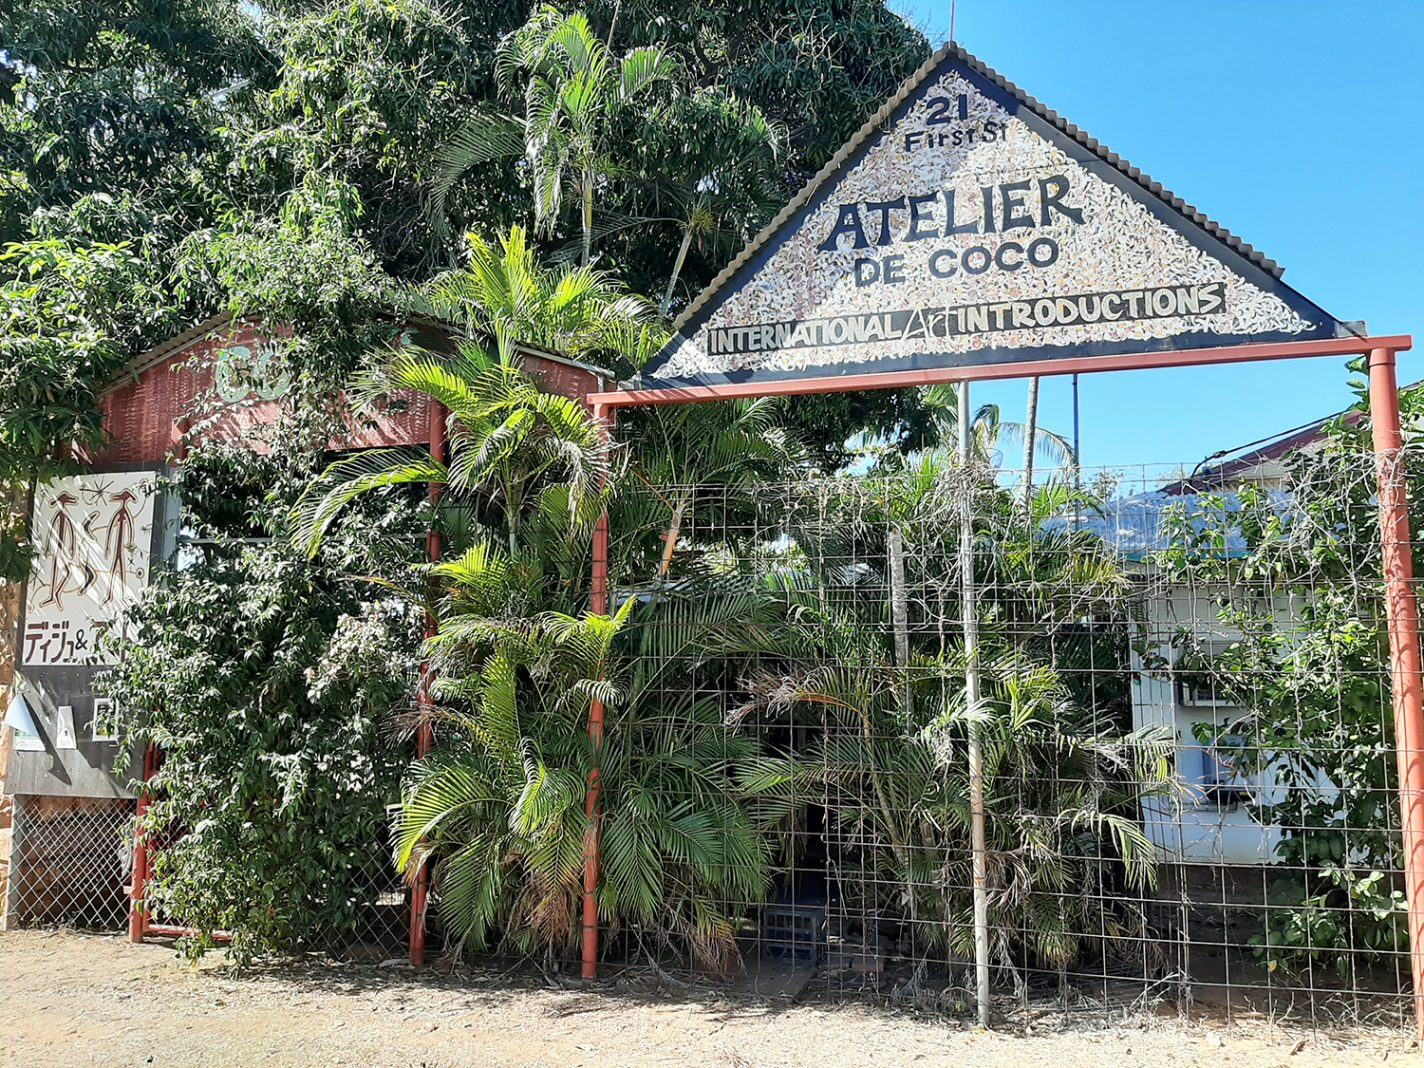 Atelier de coco in Katherine - roadtrip door de Outback